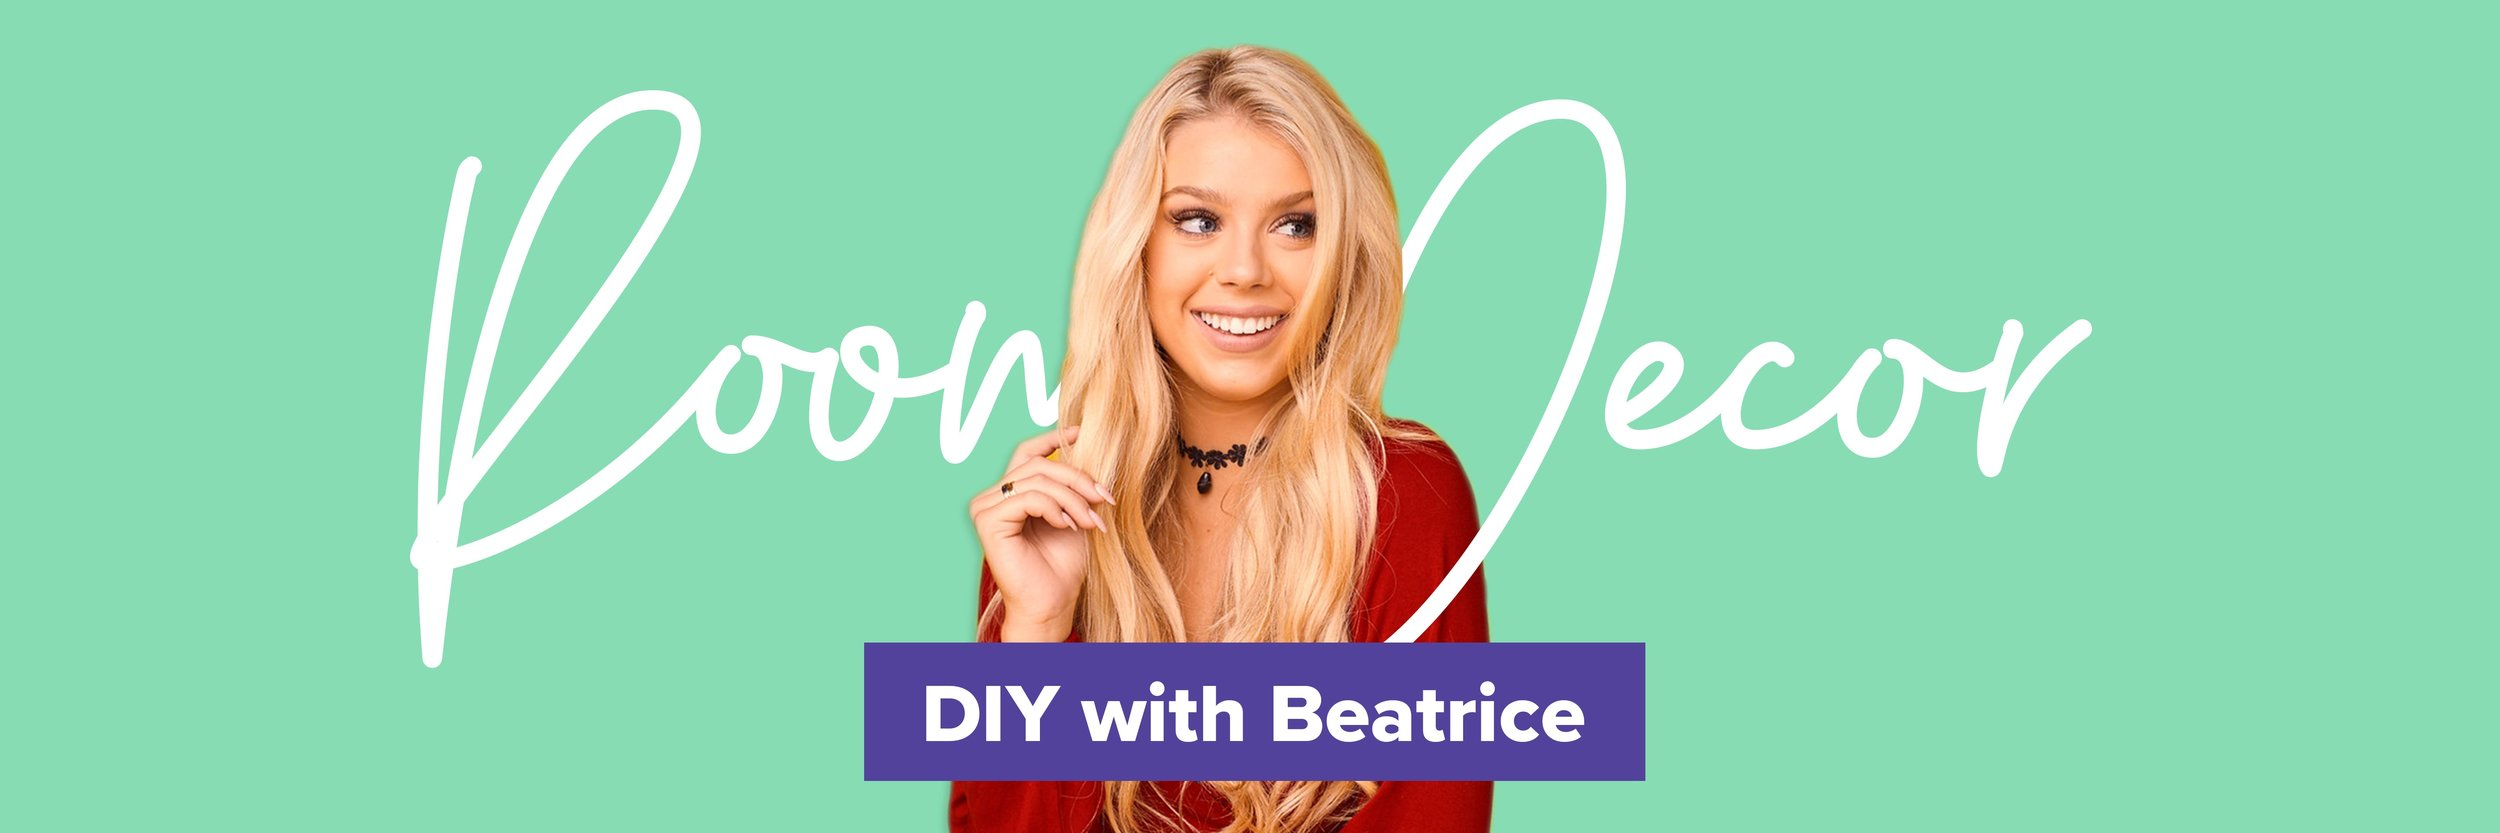 Room-Decor-DIY-With-Beatrice-Banner.jpg